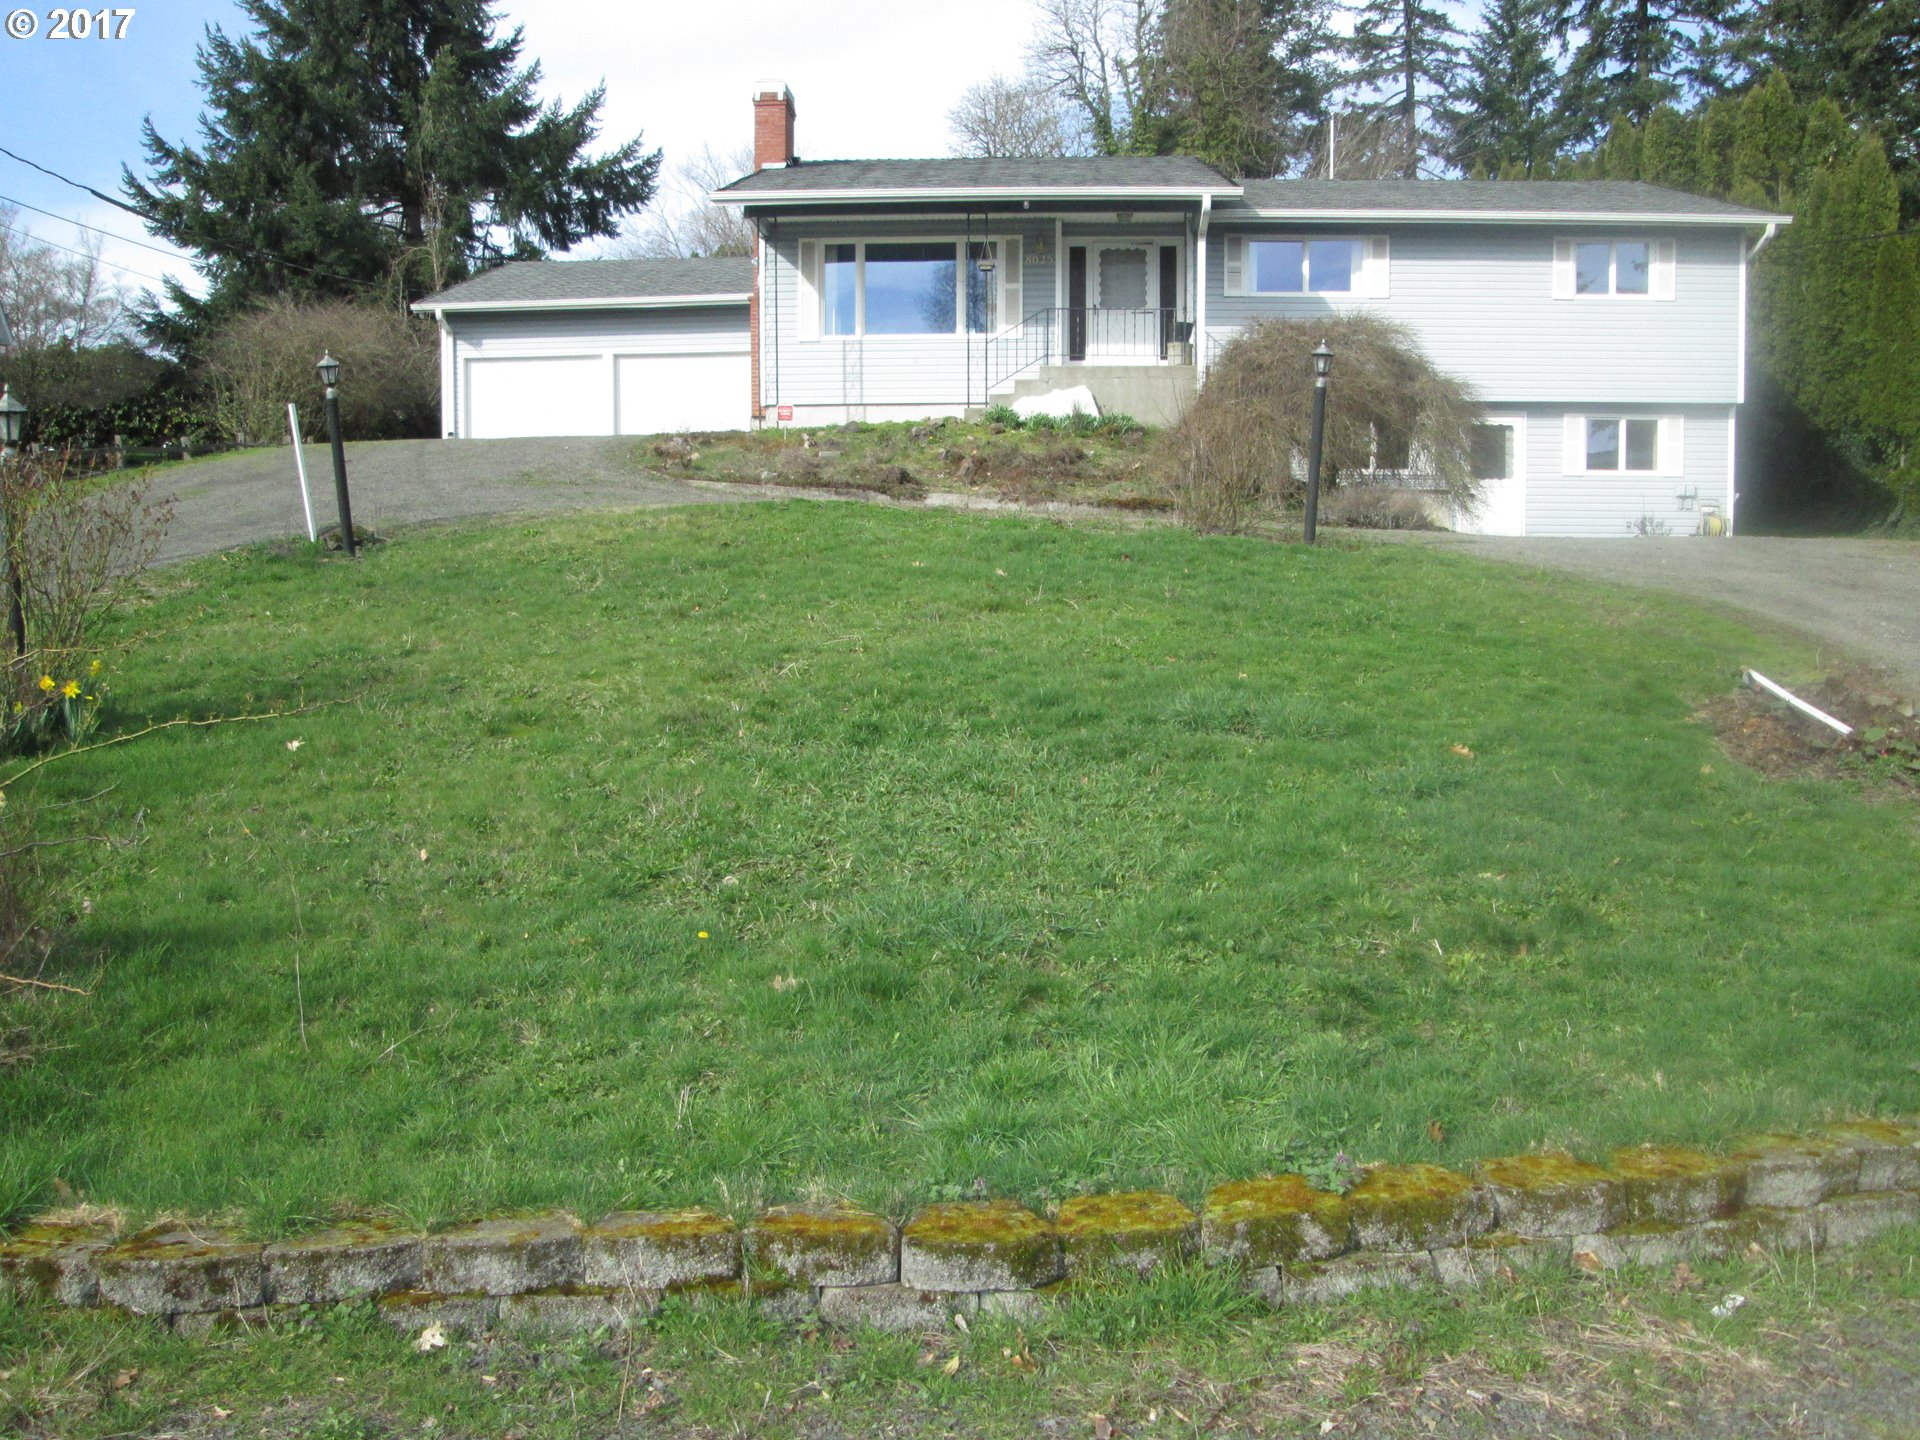 ONE OWNER 5BD 3BA ON .41 ACRE VALLEY VIEW. POSSIBLE  MOTHER-IN-LAW QUARTERS IN BASEMENT W/ 2ND KITCHEN/UTILITY. STORAGE!!!! ROOF, GUTTERS & DOWNSPOUTS IN 2006. HARDWOOD FLOORS, SECURITY SYSTEM, BUILT INS & PULL OUTS. WEST SLOPE COMMUNITY WATER & PUBLIC SEWER. COVERED DECK, LG YARD, RV PARKING W/ ELECTRICAL HOOK UP & CIRCULAR DRIVE.  BASEMENT HAS ITS OWN INGRESS. VINYL WINDOWS/SIDING. HT PUMP/AC REMOD 2014. CORIAN COUNTERS & INSTANT HOT.